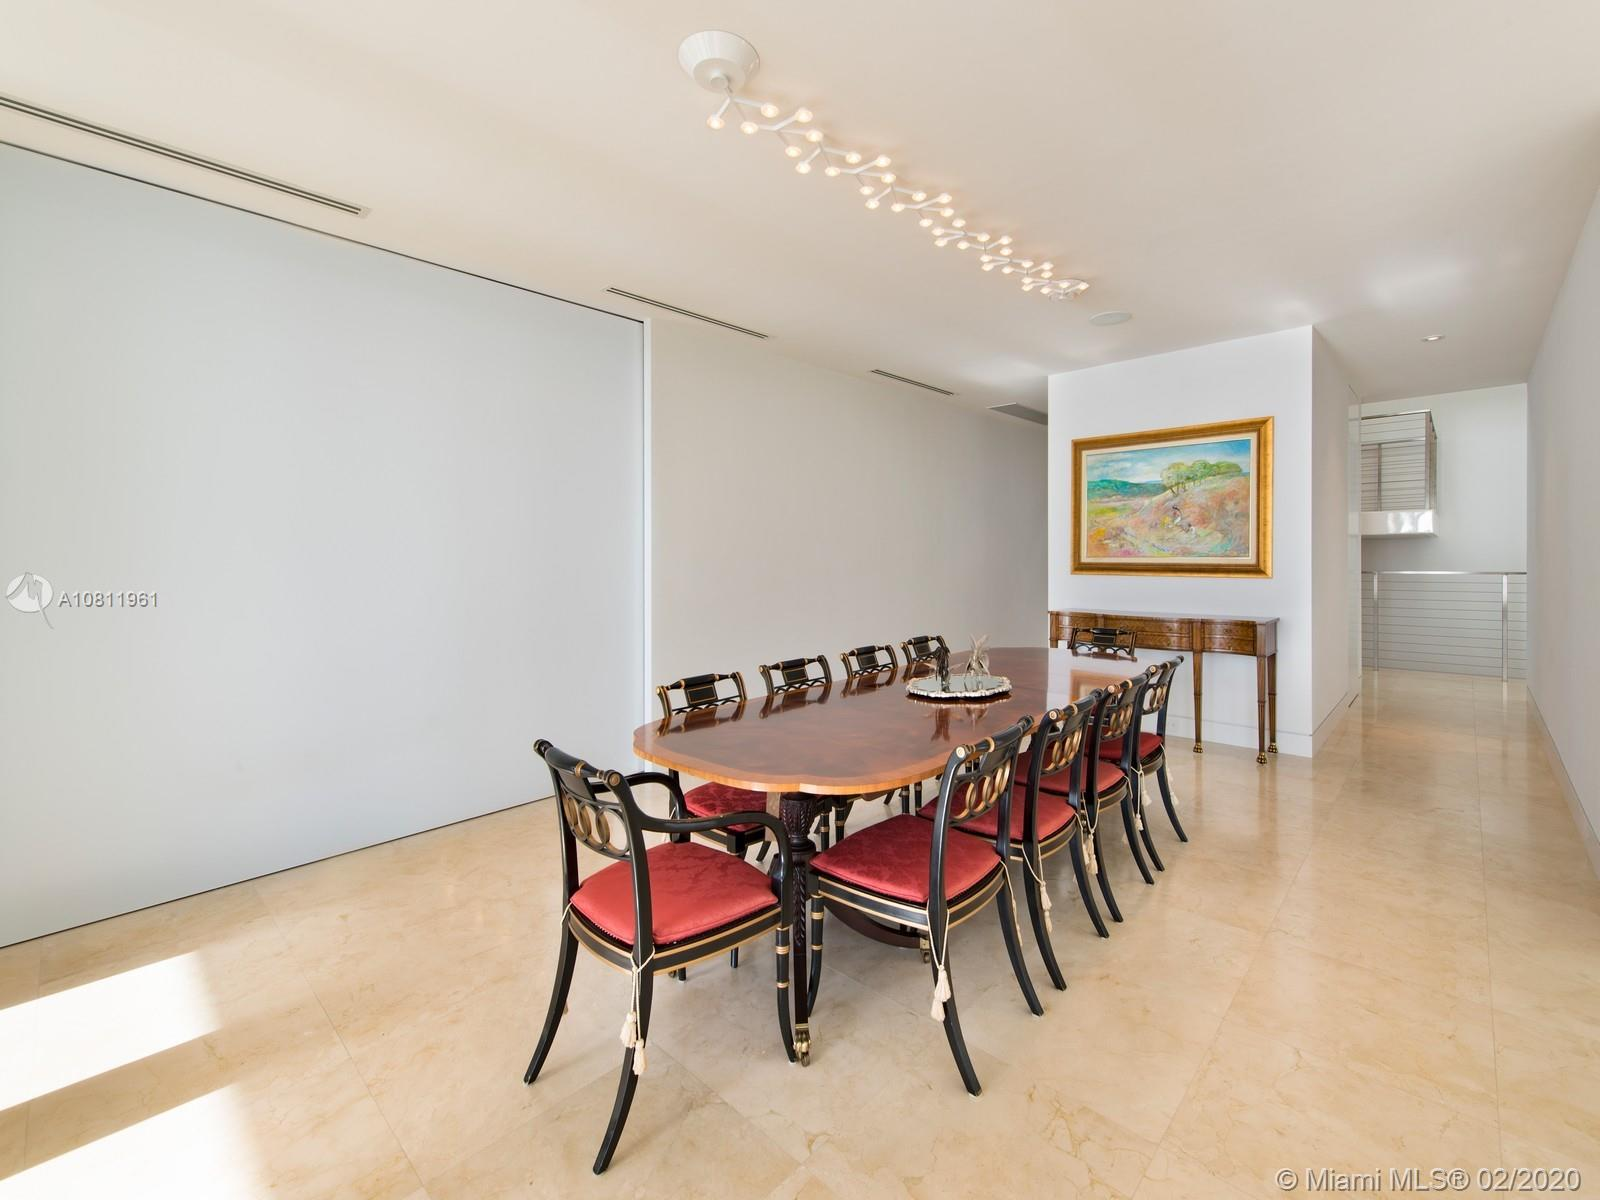 Dining room featuring Artemide lighting and direct ocean views.